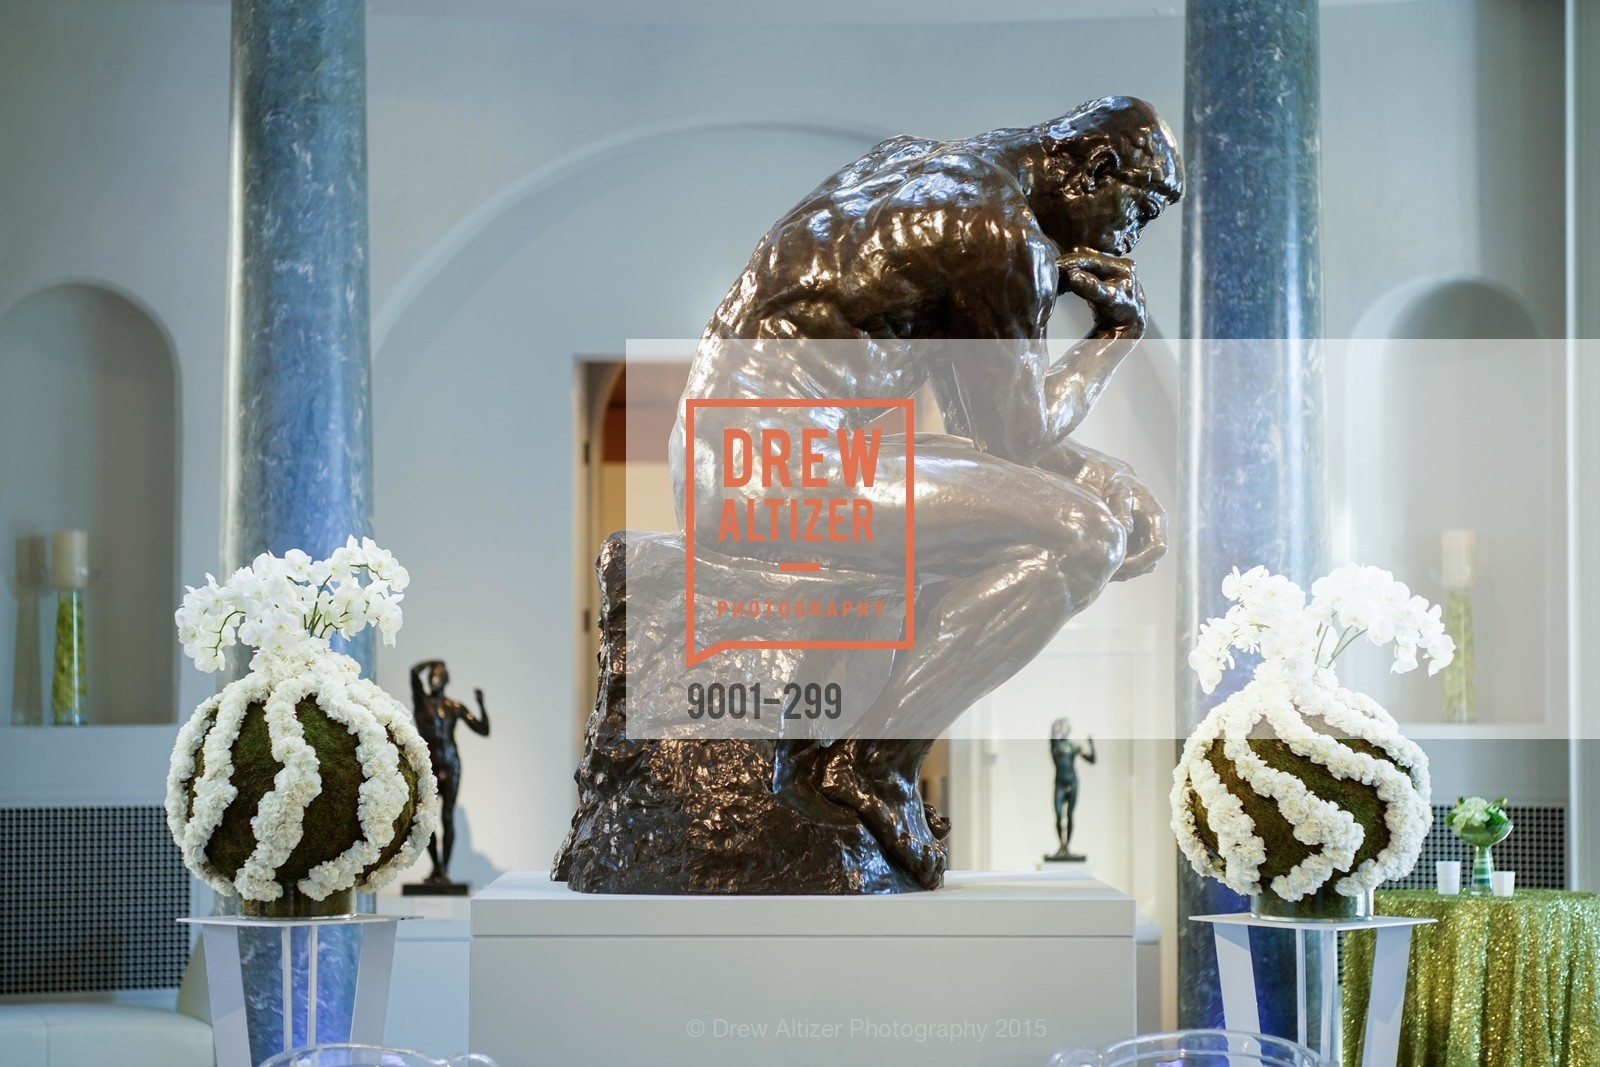 Atmosphere, Stanford University's Cantor Arts Center Presents Rodin by Moonlight, September 19th, 2015, Photo,Drew Altizer, Drew Altizer Photography, full-service agency, private events, San Francisco photographer, photographer california